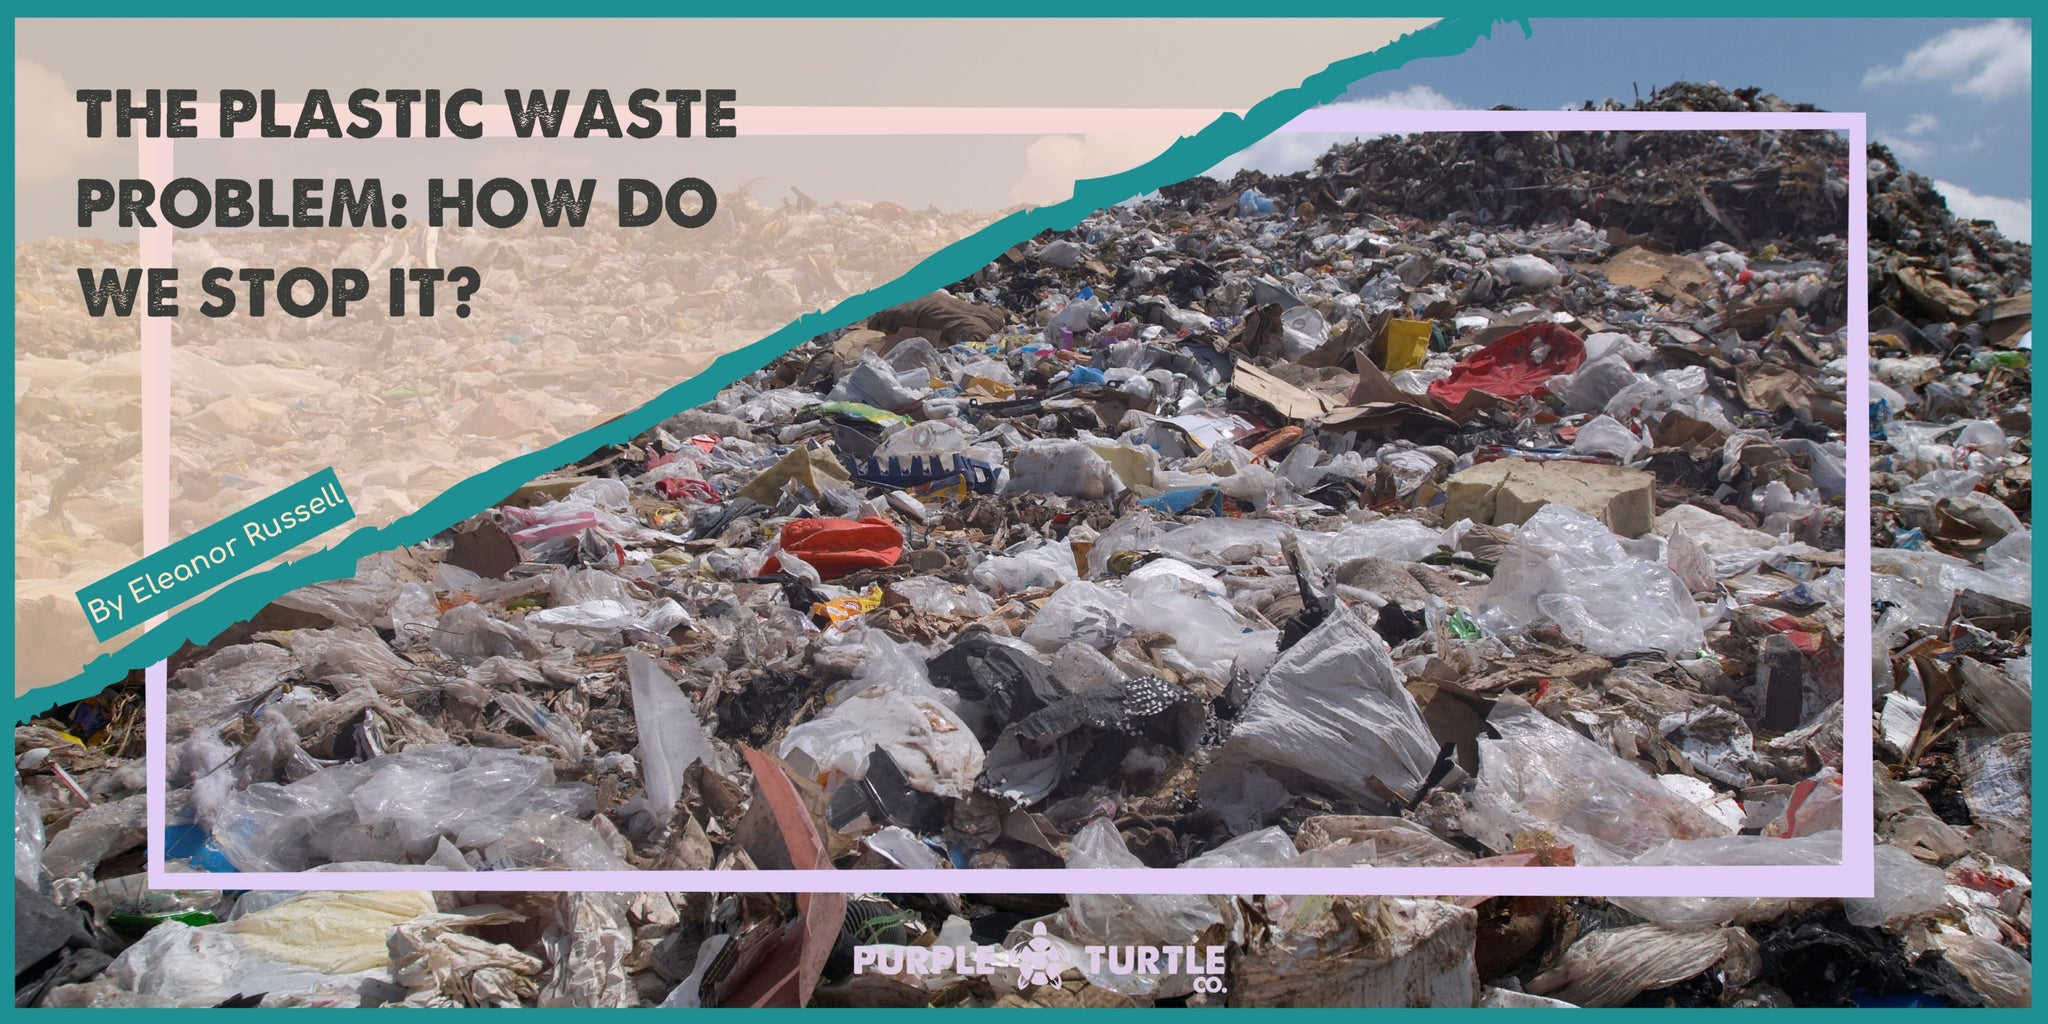 Thousands of pieces of plastic rubbish in a landfill, framed by the Purple Turtle logo, blog author and title.